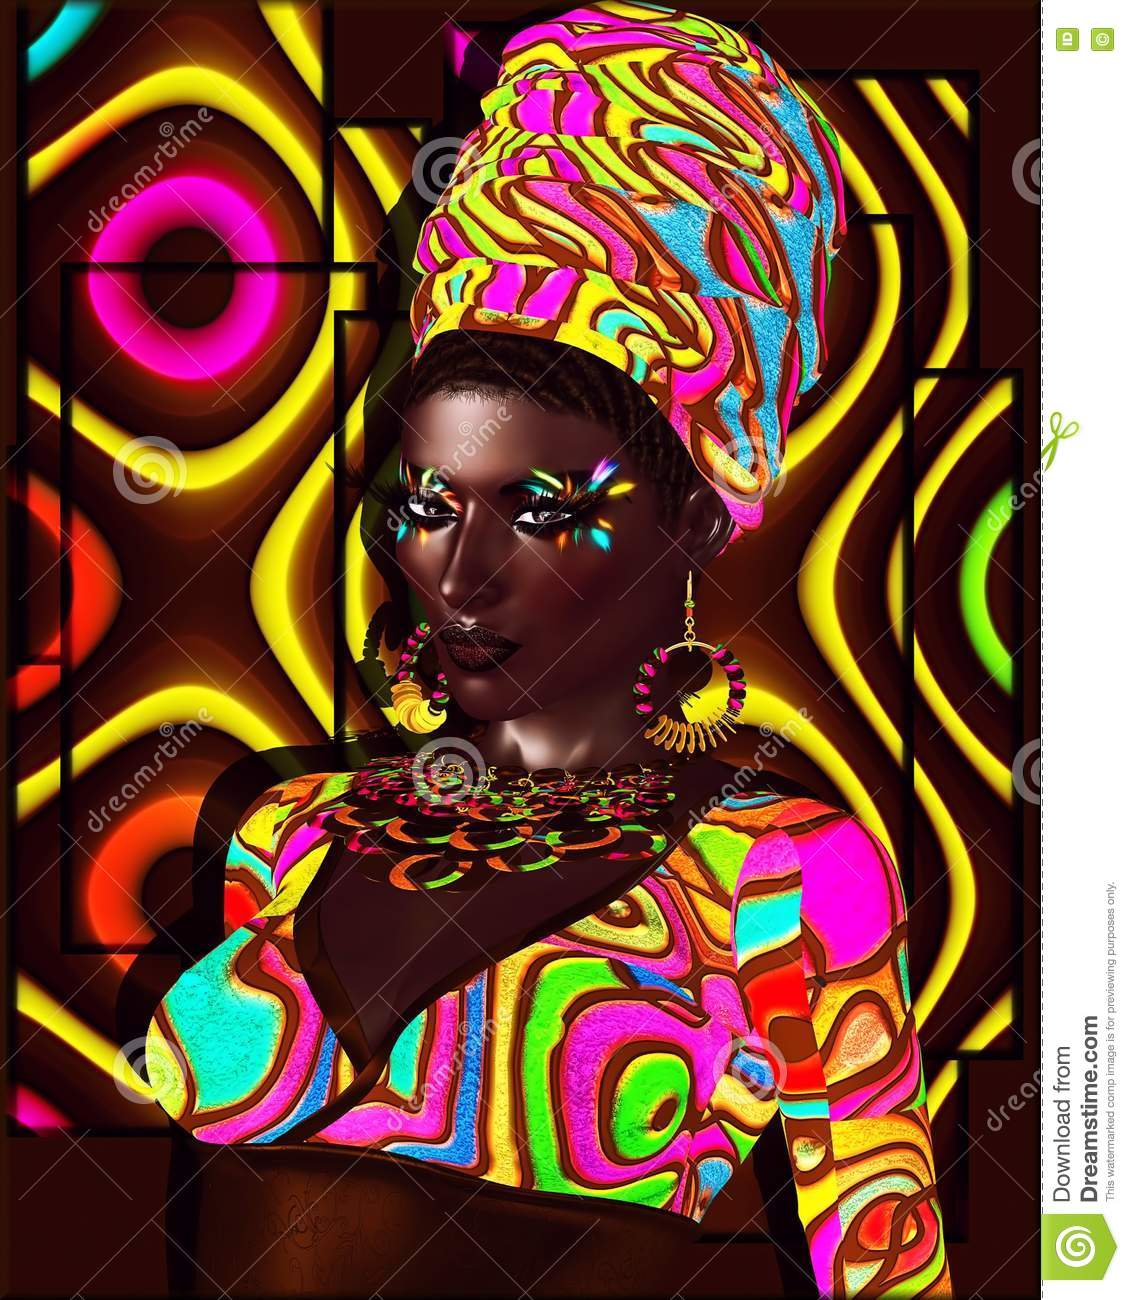 African American Fashion Beauty. A Stunning Colorful Image ...